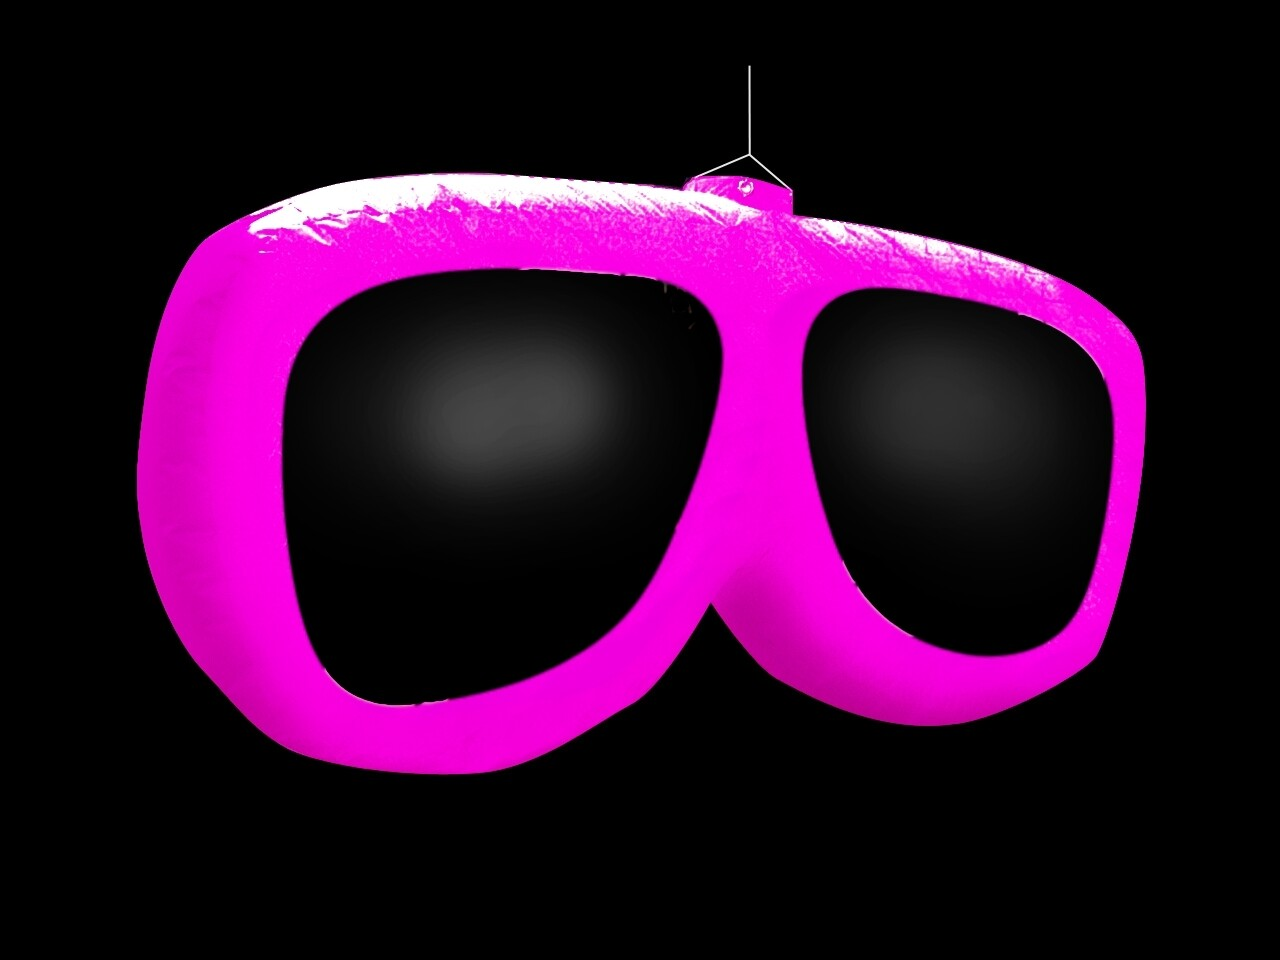 Hanging Inflatable Sunglasses 8.2ft/250cm x 3.9ft/120cm